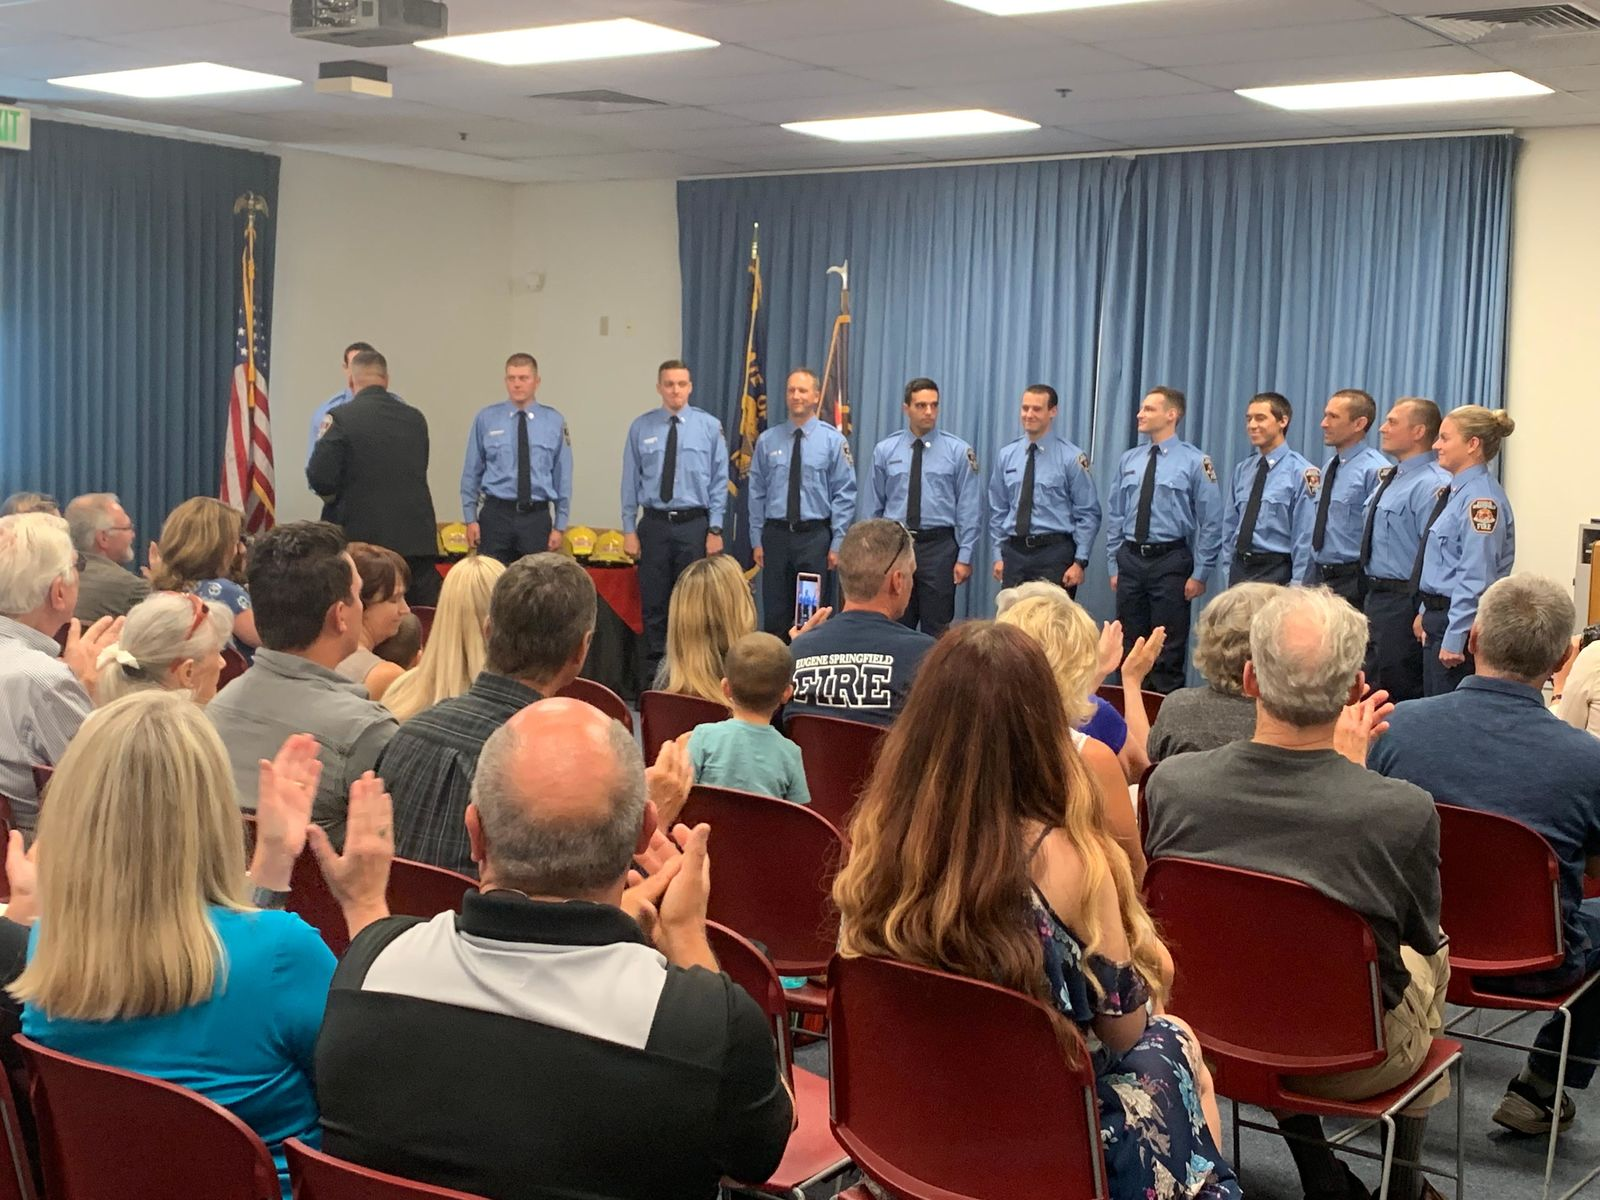 11 new firefighters received their badge and helmet, graduating as Eugene Springfield Fire Department recruits, July 12, 219. (SBG)